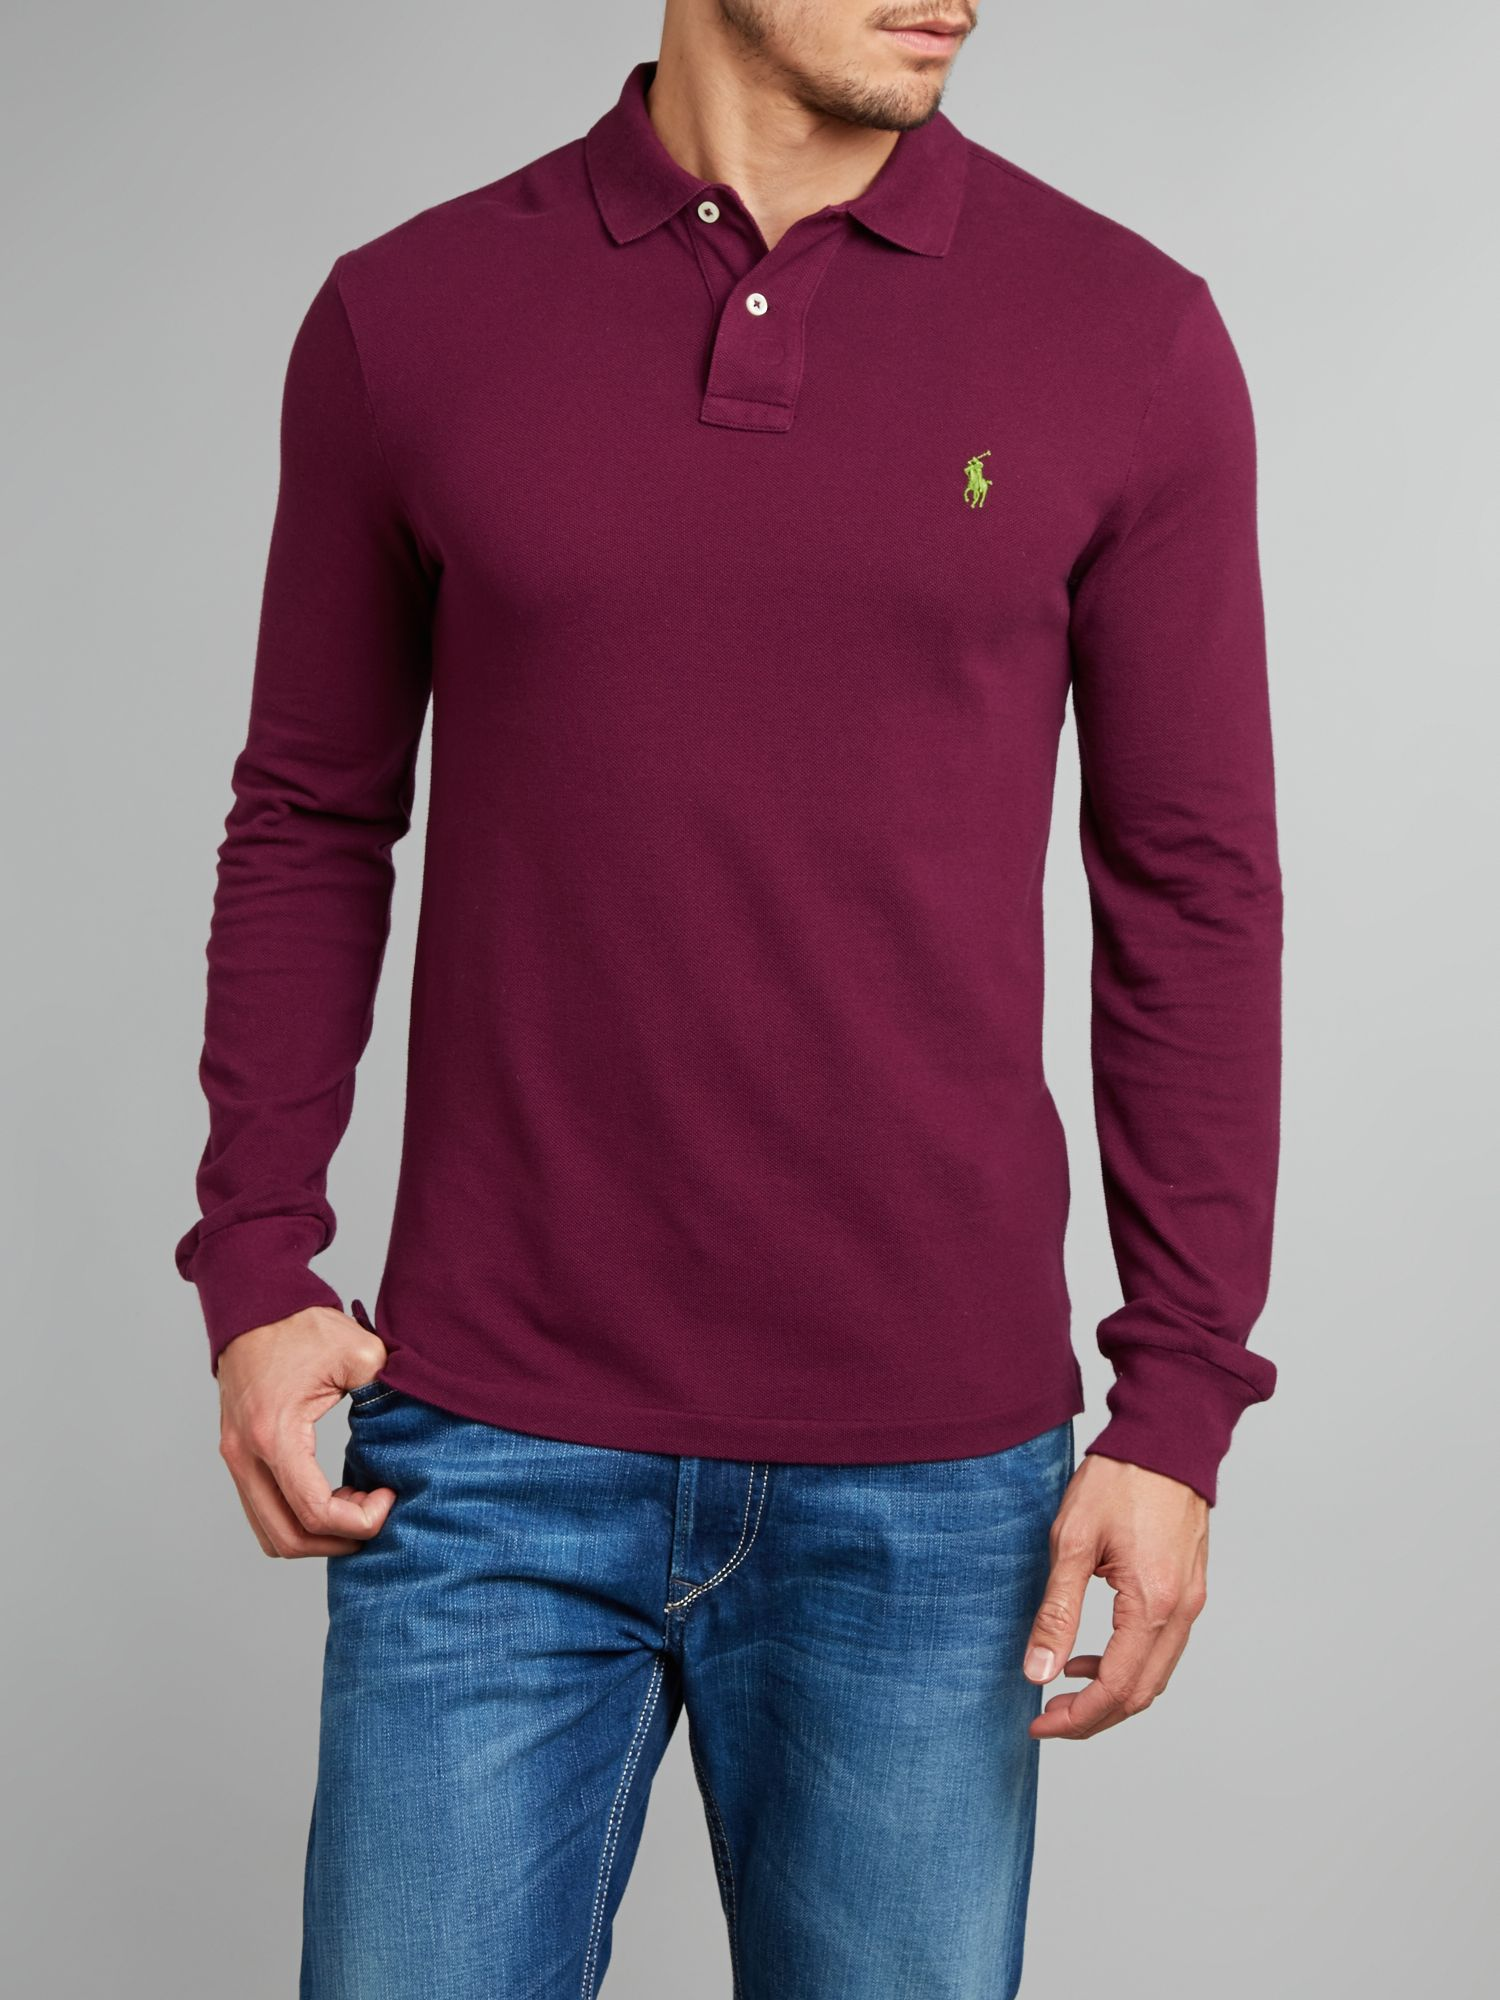 Slim fit long-sleeve mesh polo